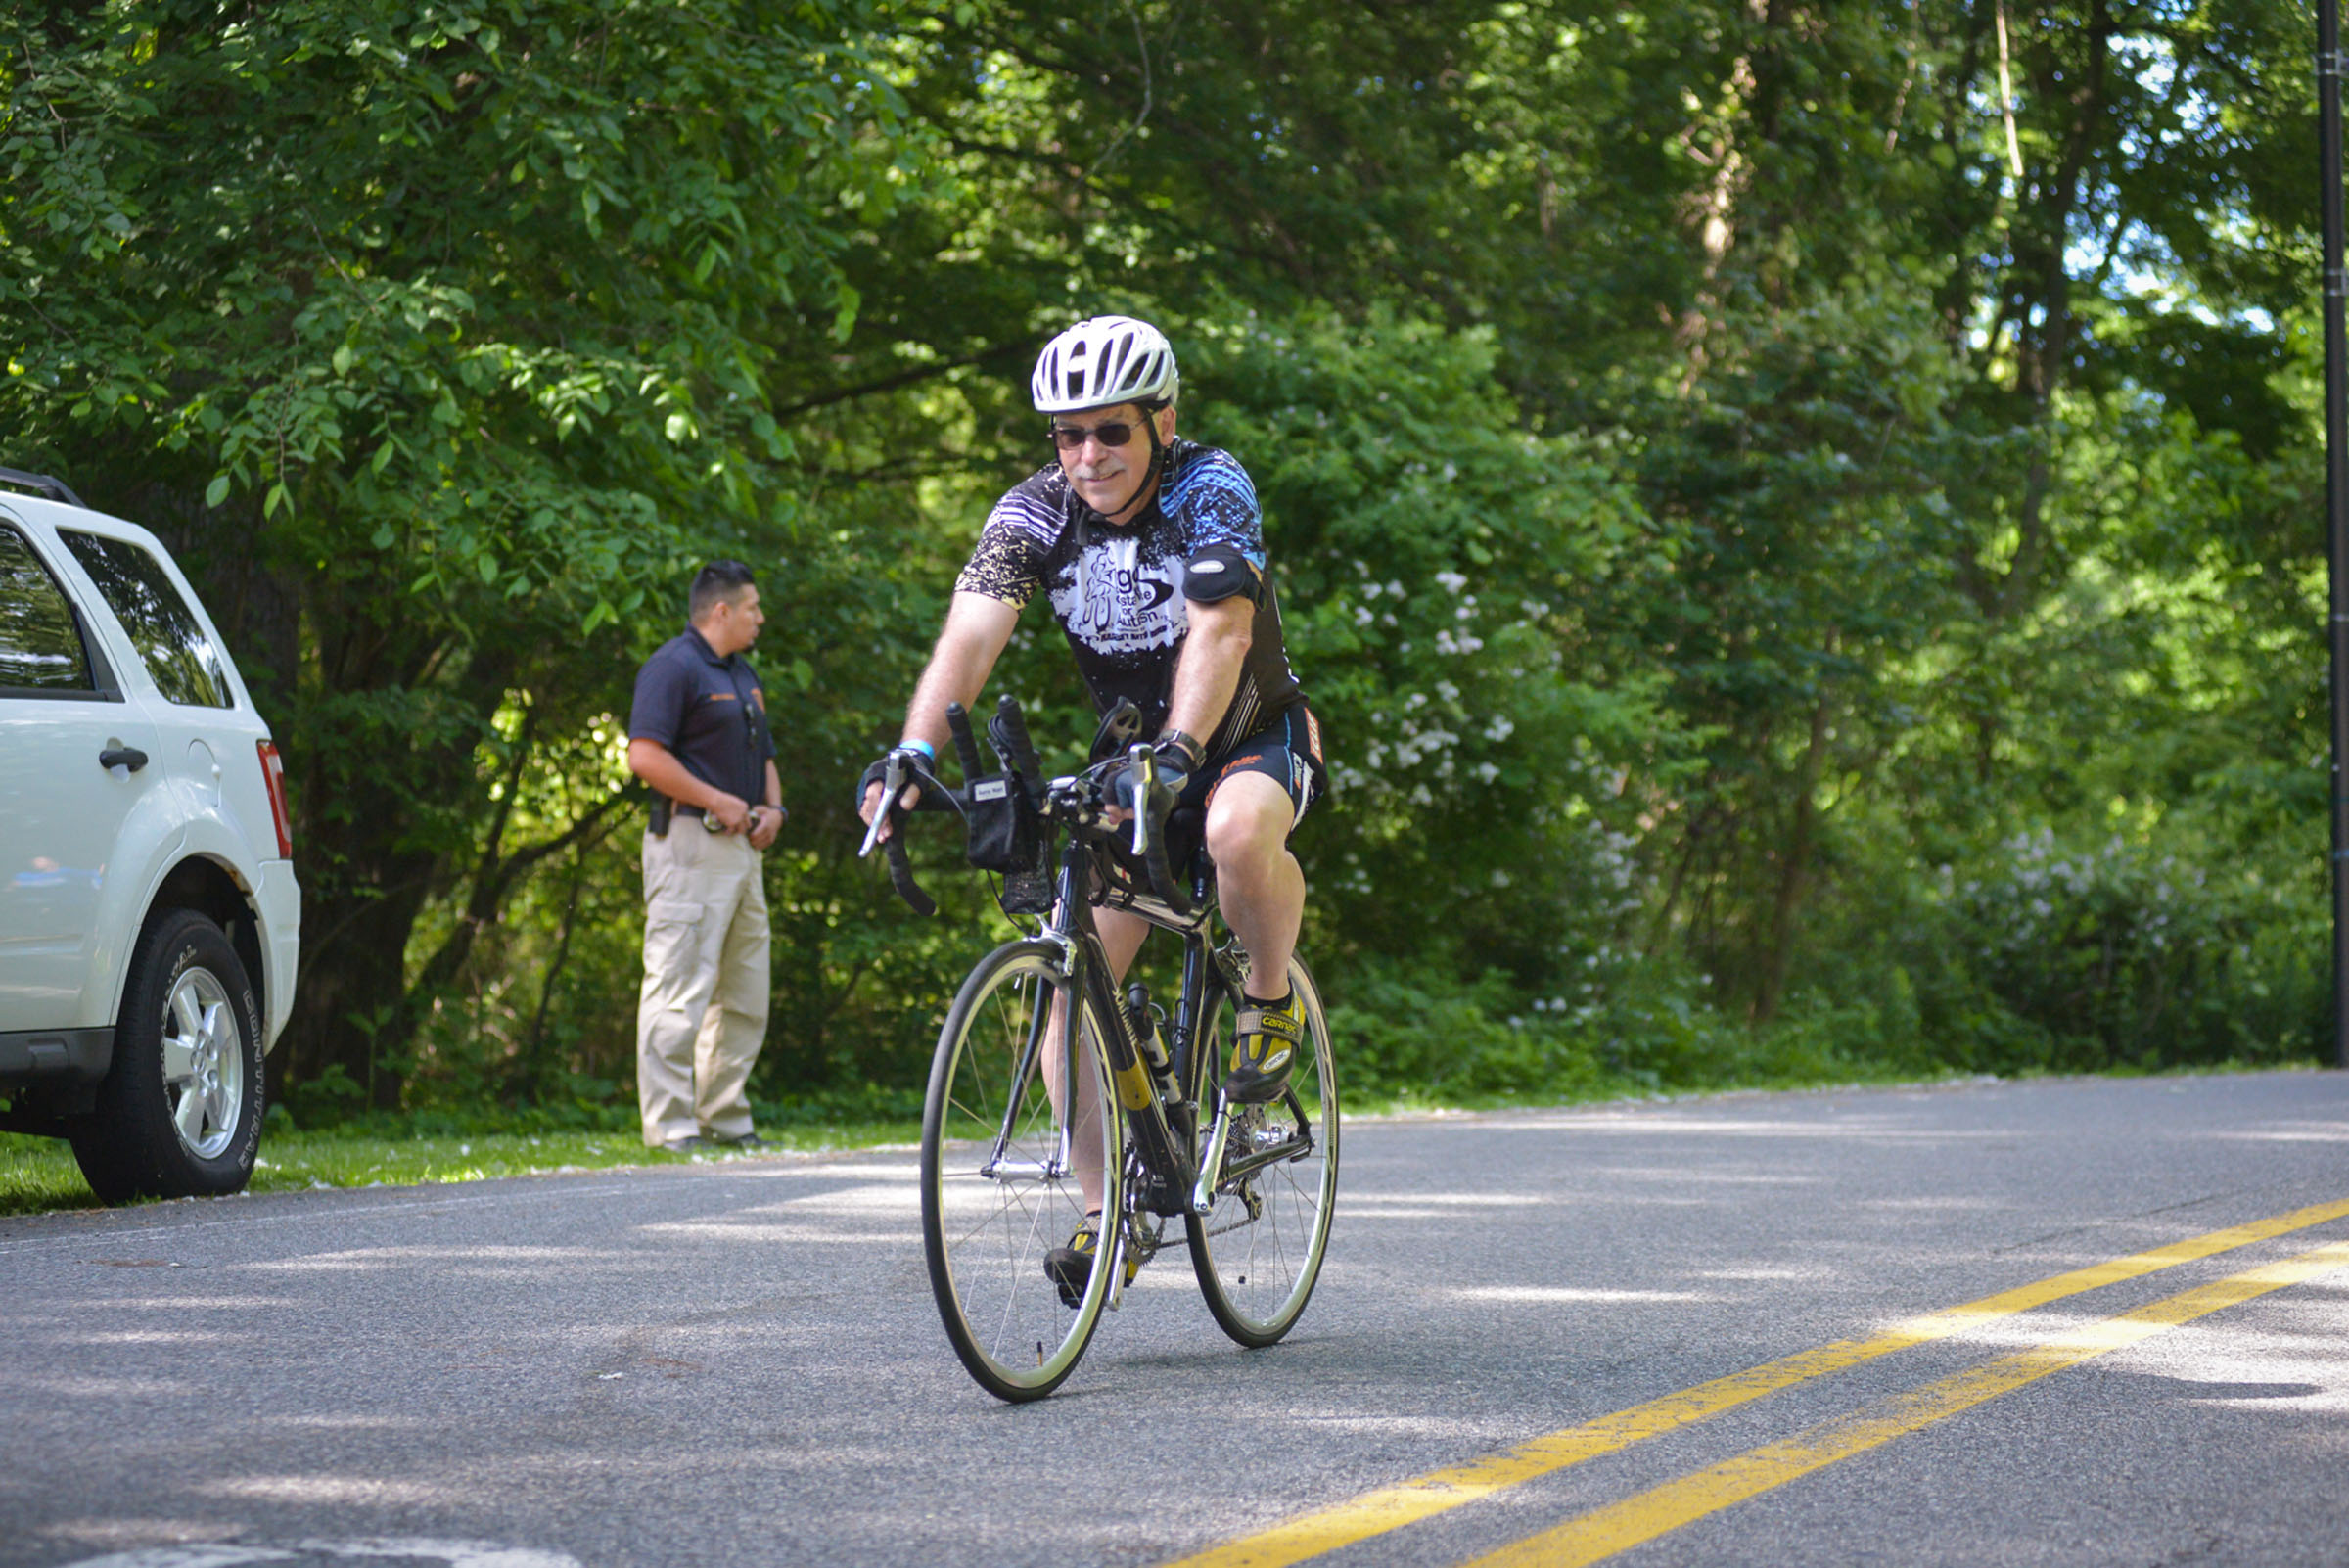 2017-06-04 GTD4A Charity Bike Ride - BCC - Paramus NJ-2063.jpg